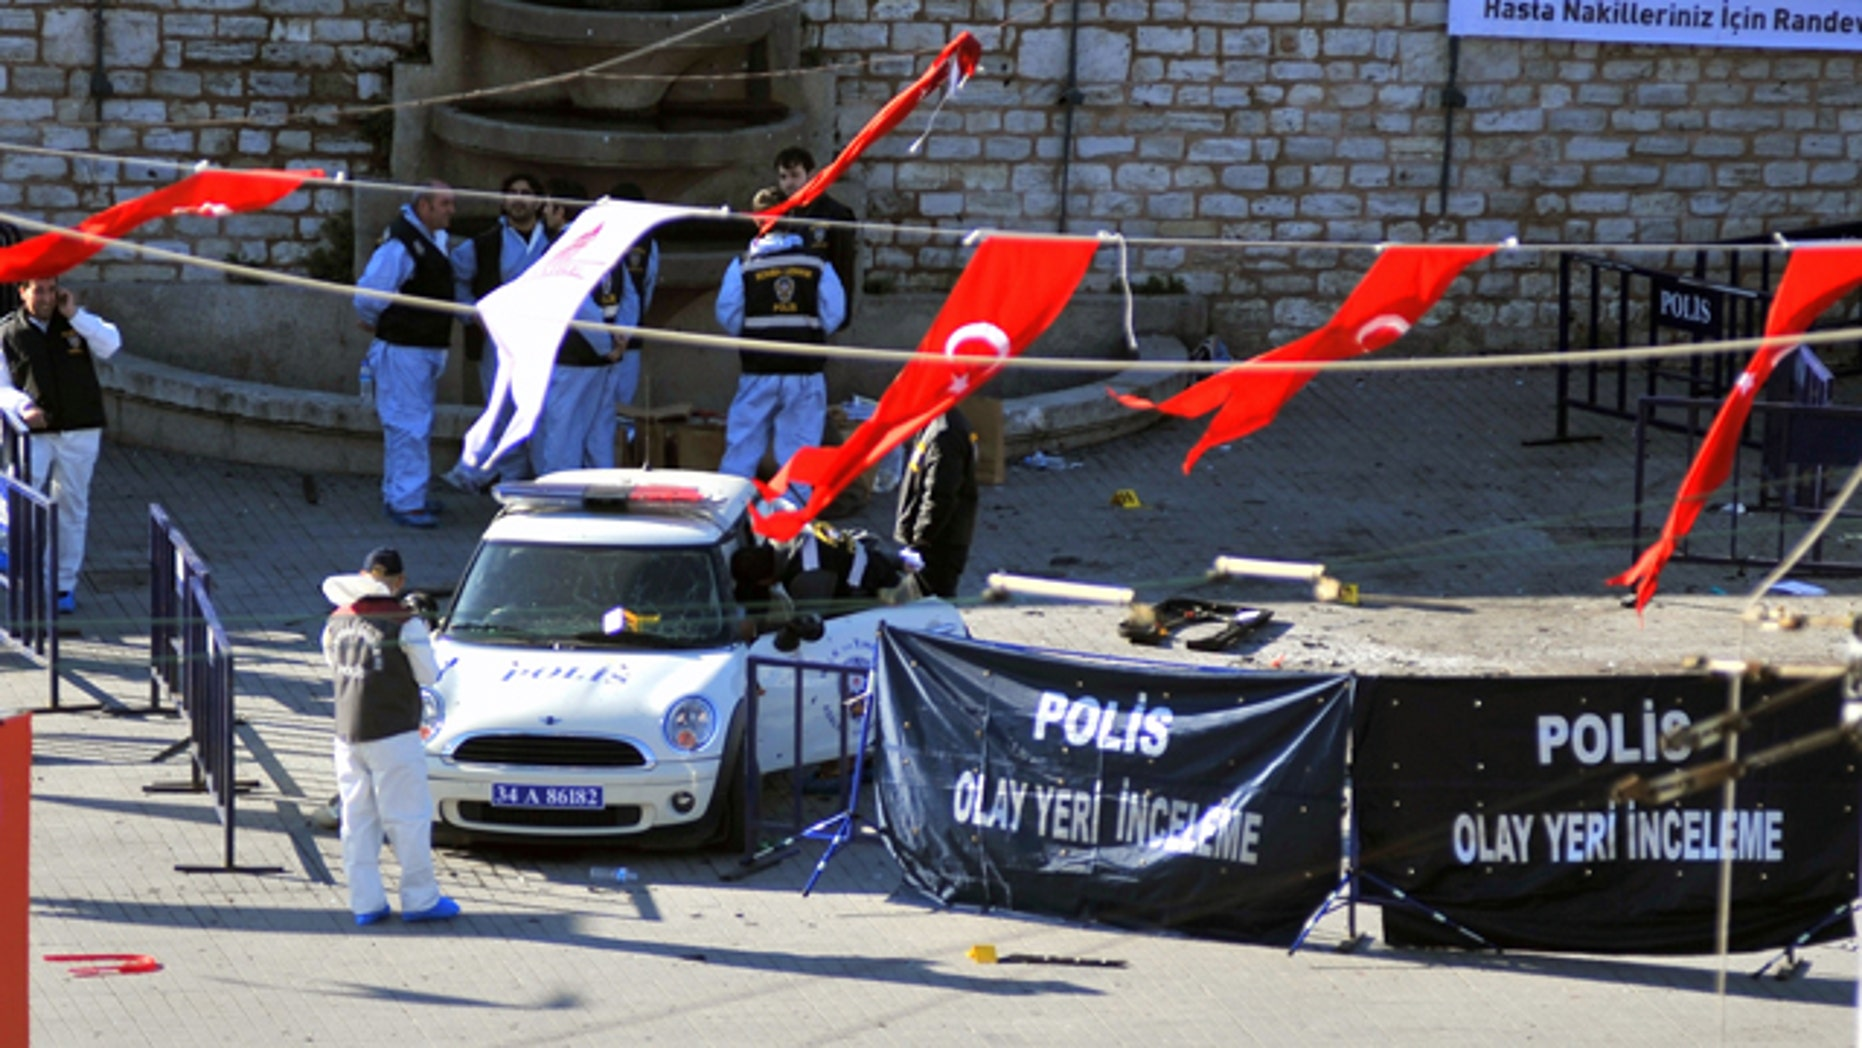 Police forensic officers inspect the scene after an explosion in Taksim square where riot police were stationed in case of demonstrations in Istanbul, Turkey, Sunday, Oct. 31, 2010. A suspected suicide bomber detonated a device in Istanbul's main square on Sunday, wounding 32 people, Istanbul's police chief said.